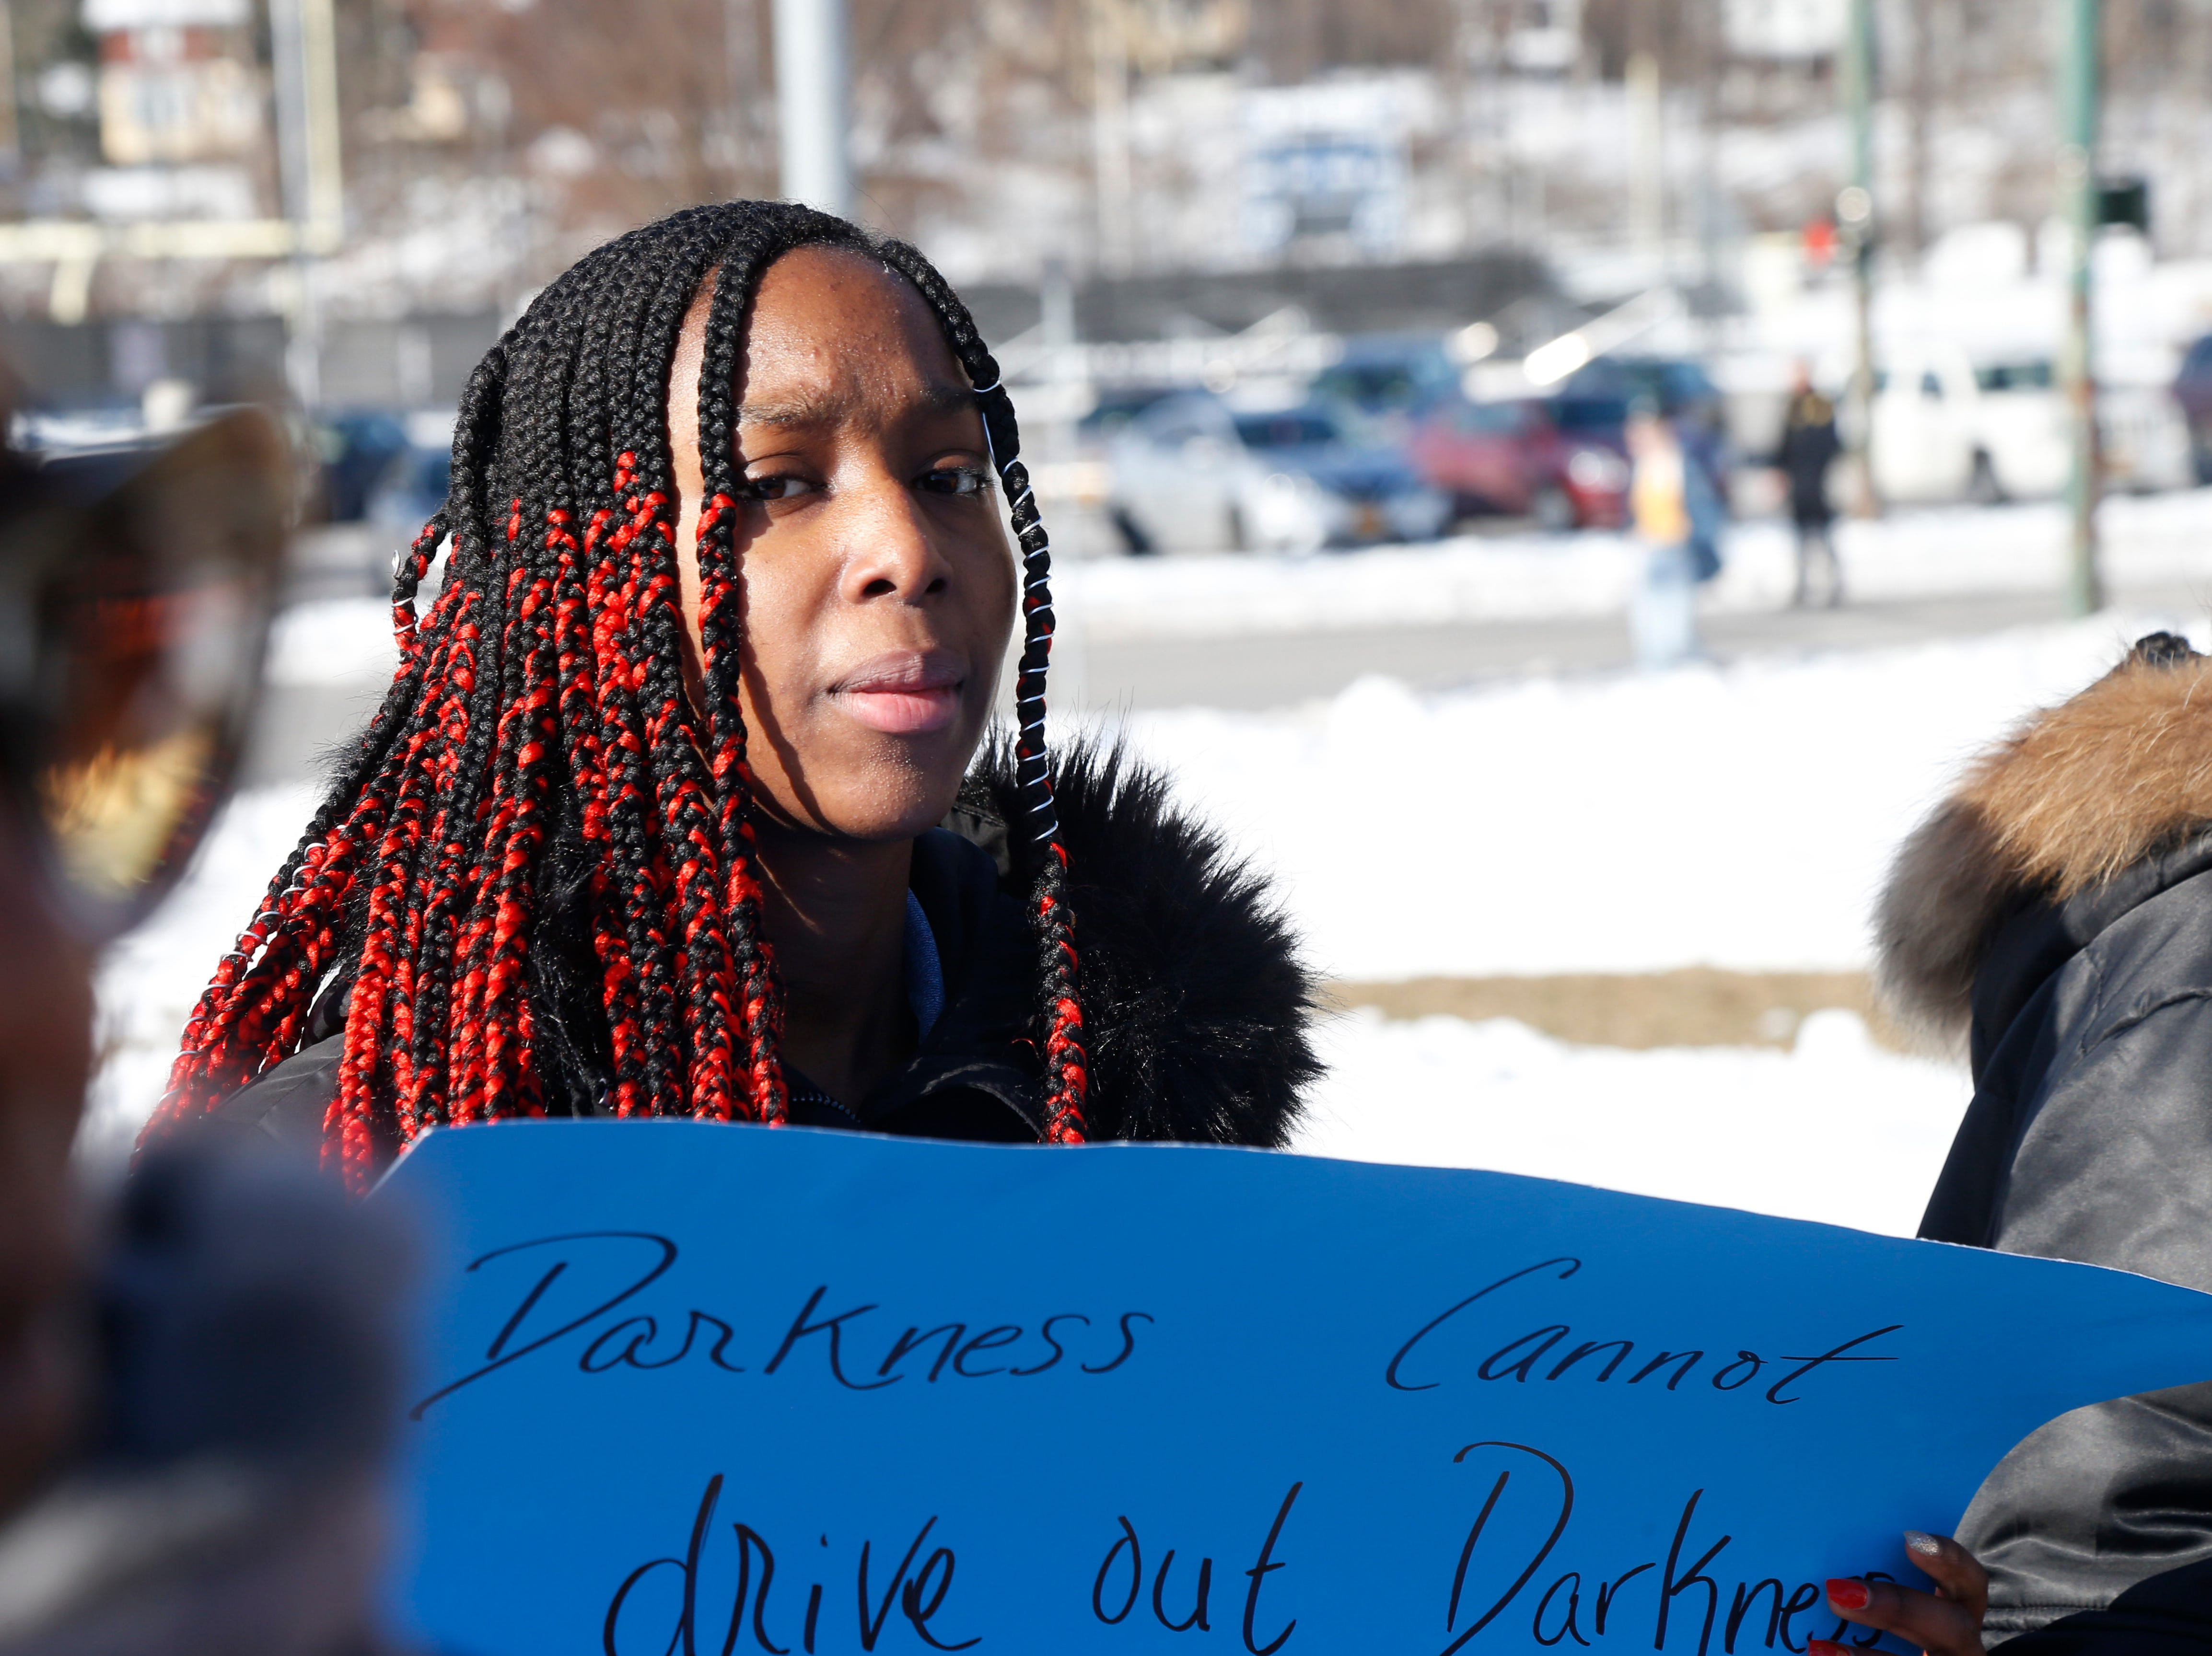 Christina Stone, an 8th grade student at Poughkeepsie Middle School participates in Thursday's peace walk as part of the district's Martin Luther King Celebration at Poughkeepsie High School on February 14, 2019.